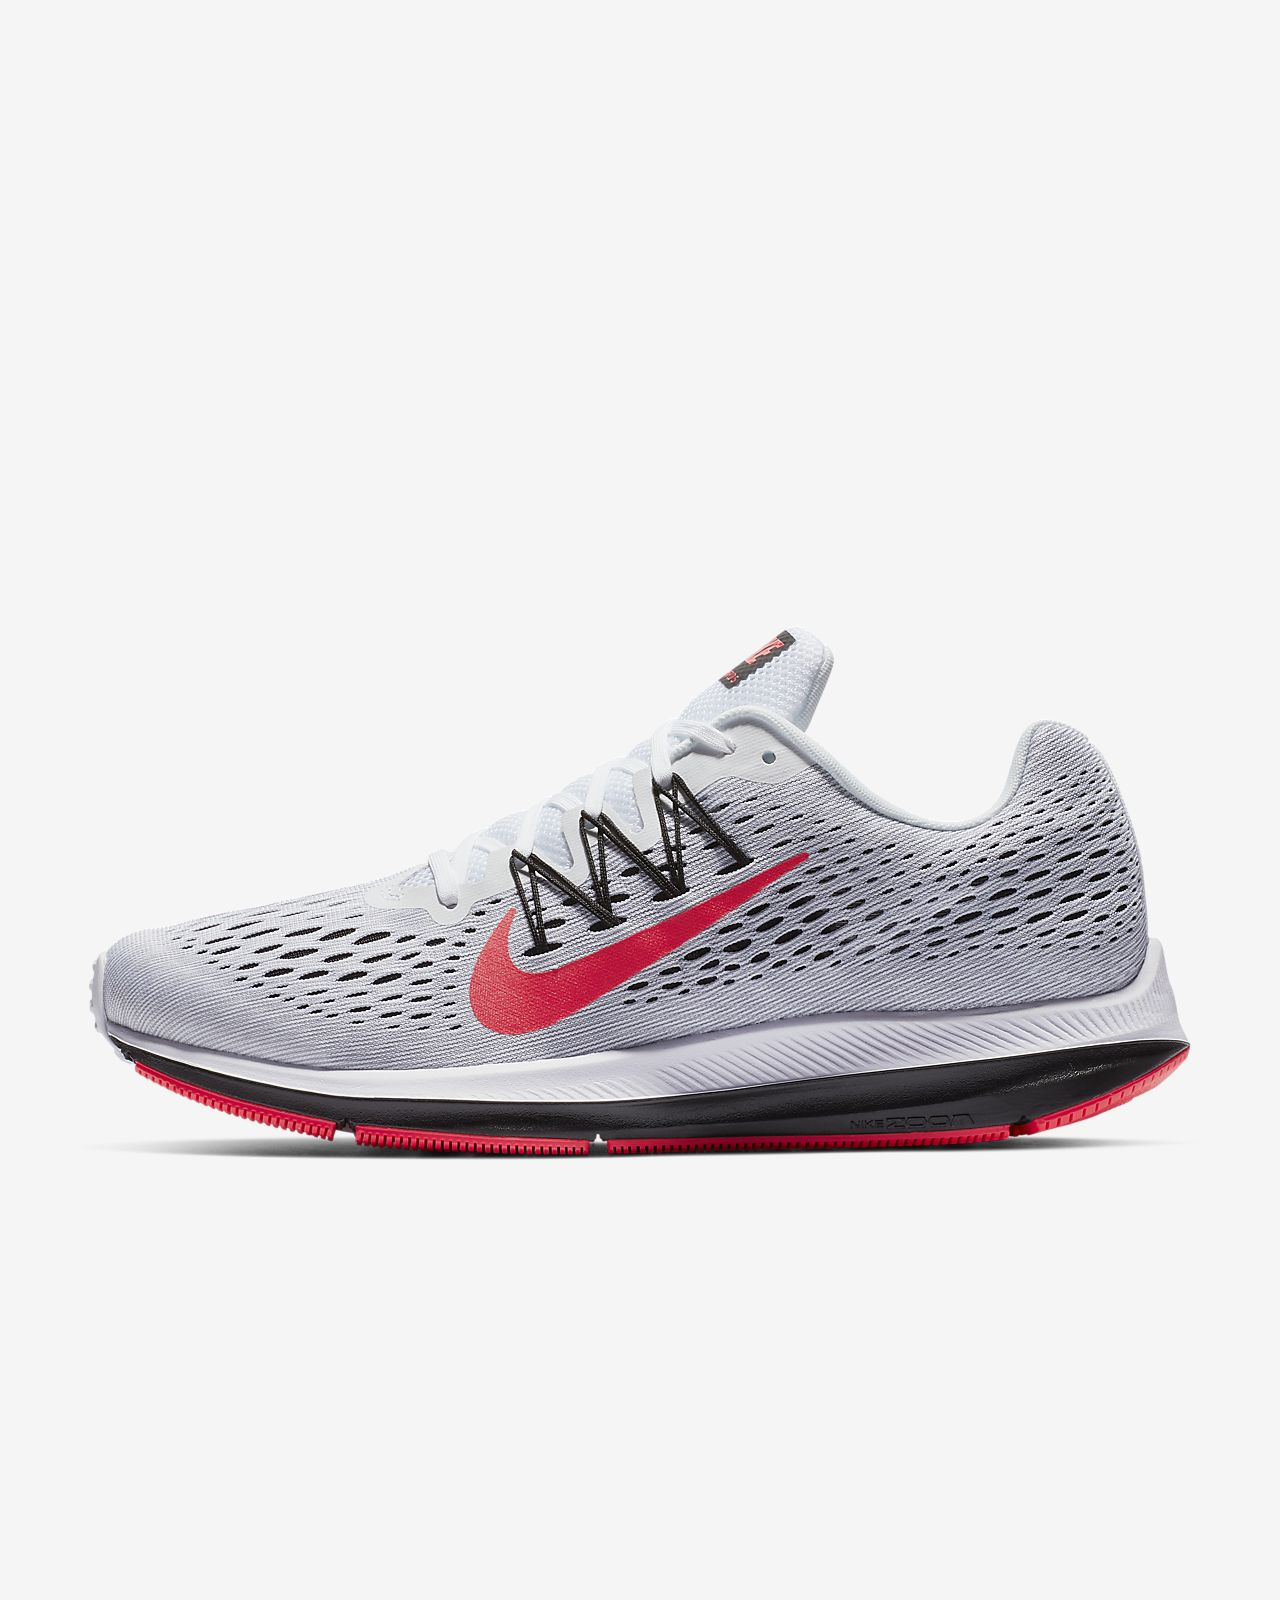 1f53965a9f7 Nike Air Zoom Winflo 5 Men s Running Shoe. Nike.com IN